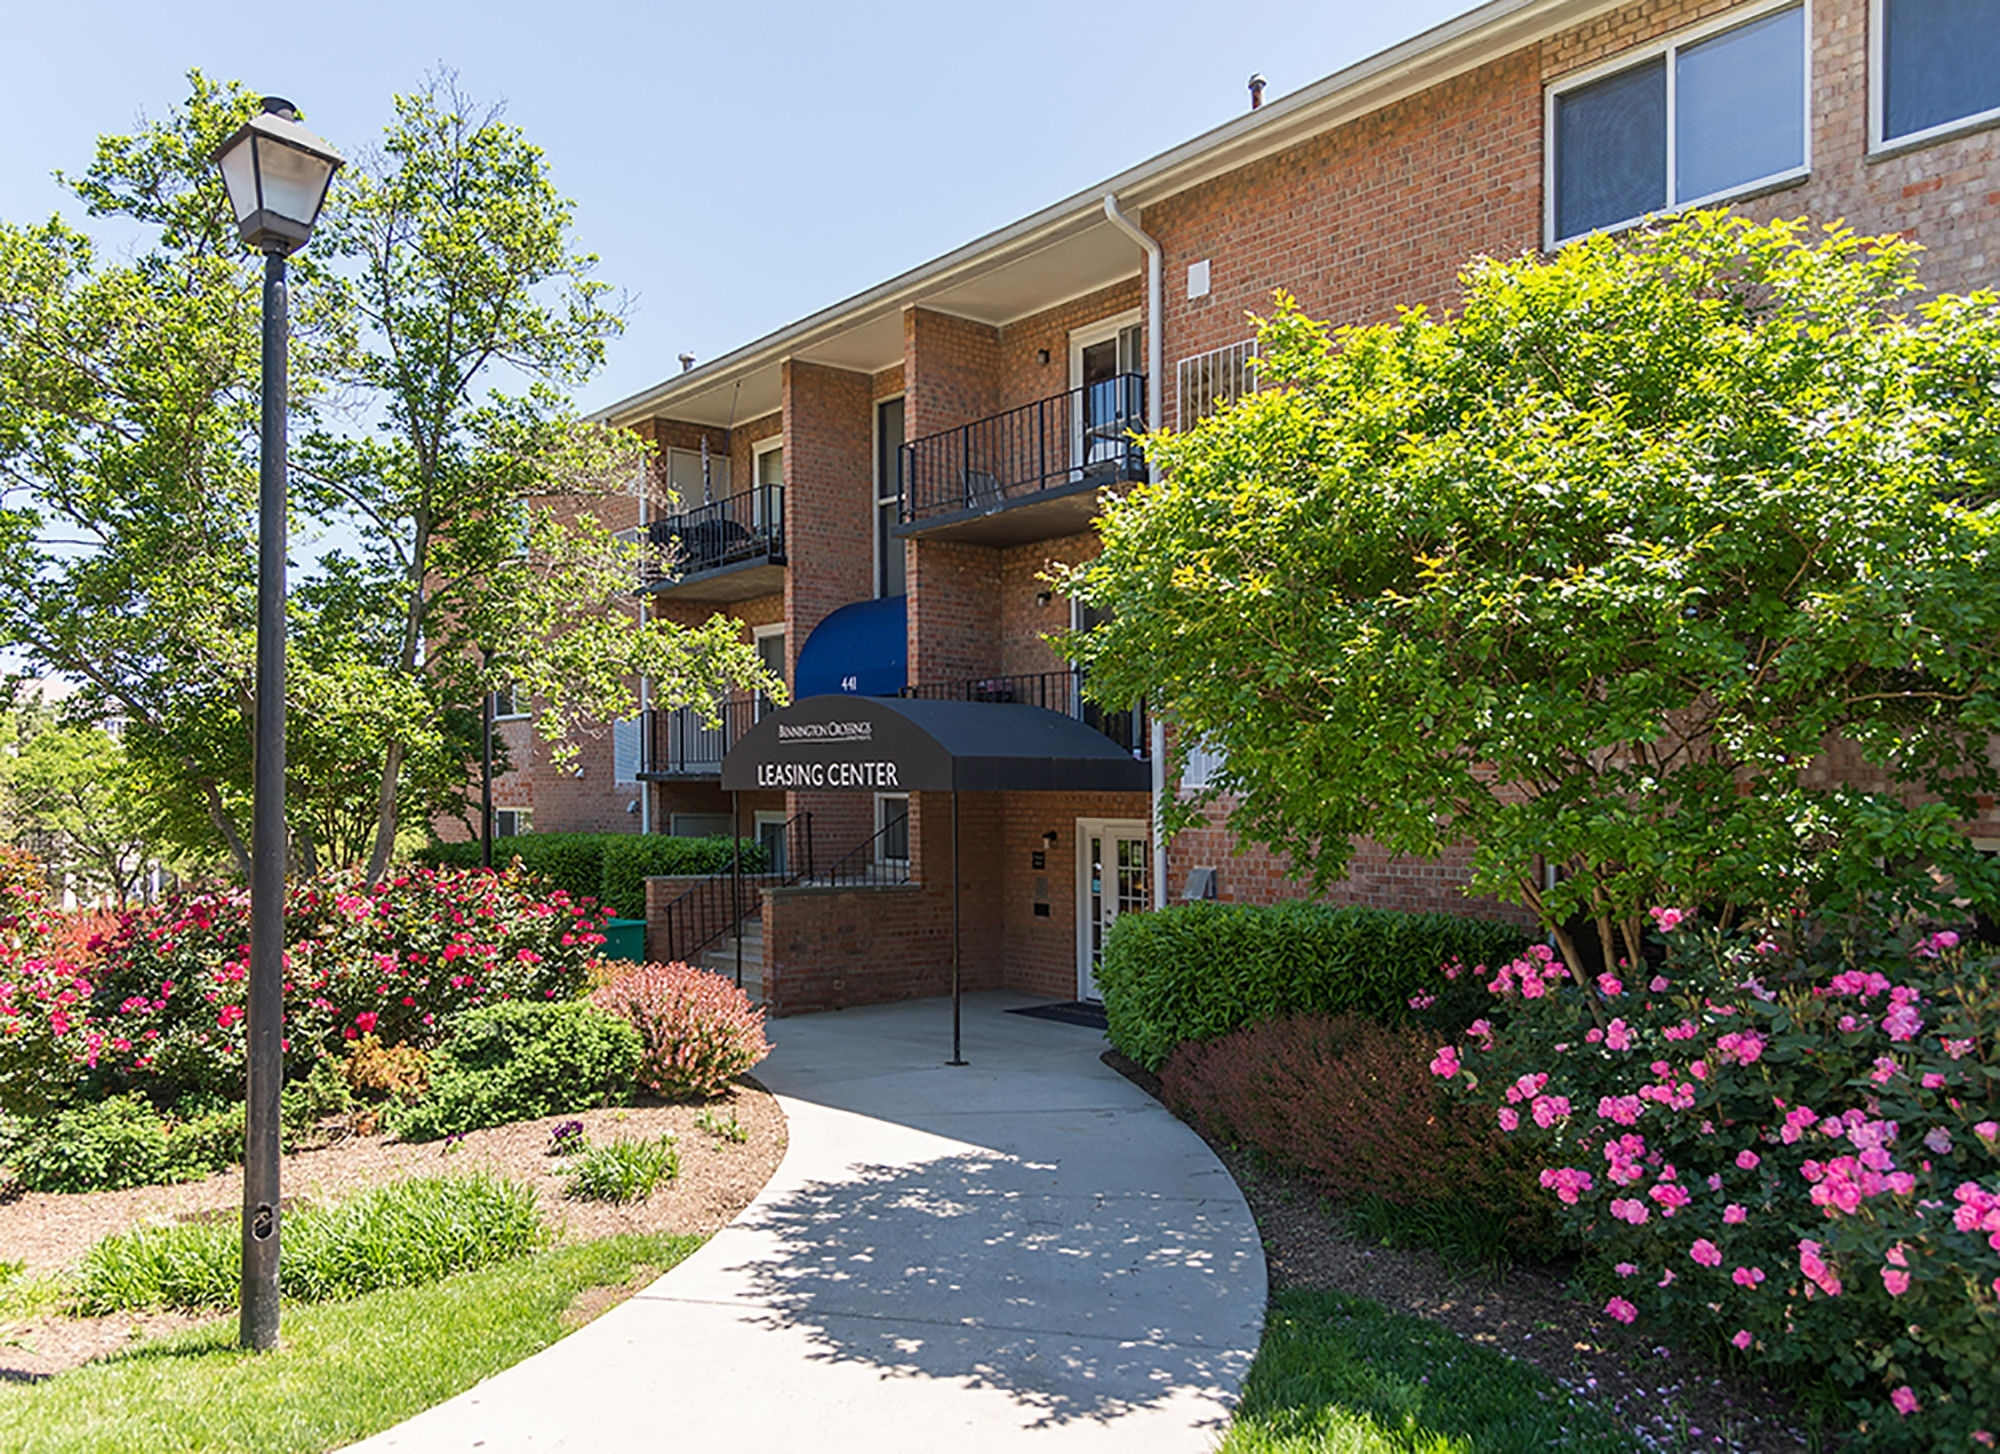 20 Best Apartments For Rent In Lincolnia, Va From $1,240! pertaining to Stuart Gardens Apartments